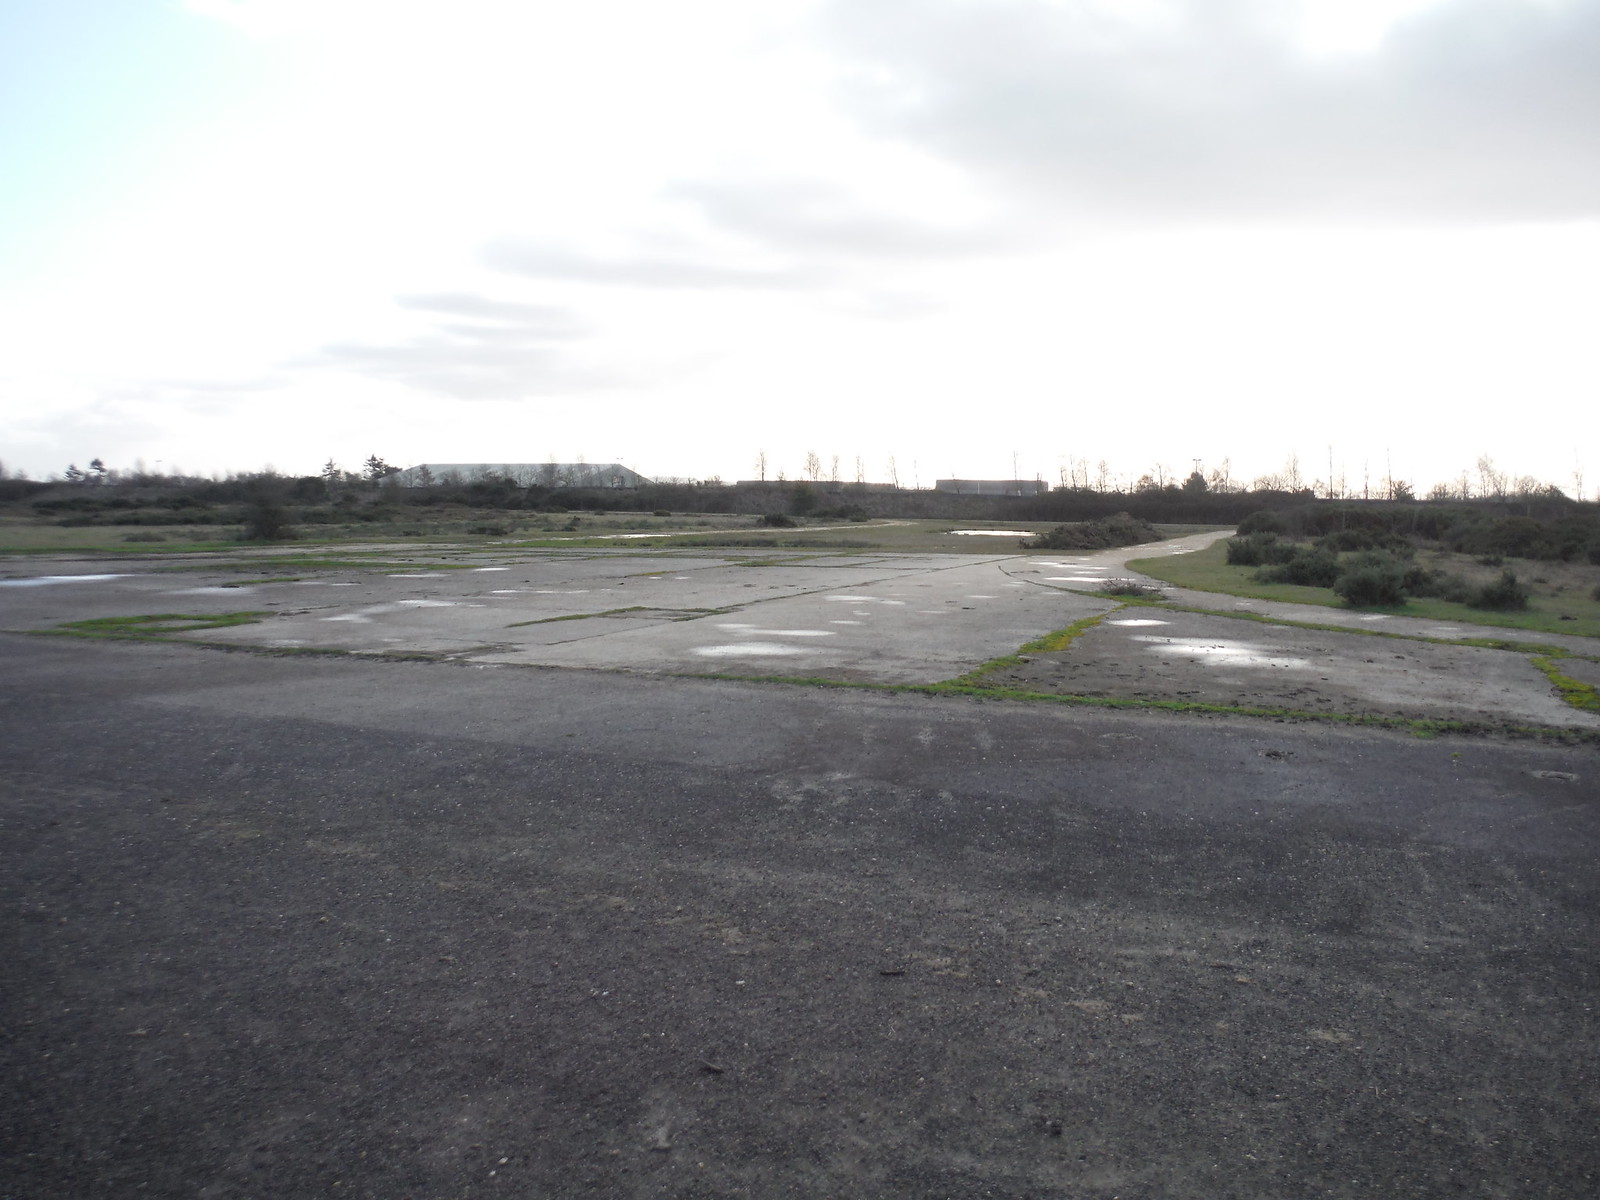 Greenham Common. Ex-Runway crossing Taxiway from Ex-US Air Force Compound SWC Walk 34 Newbury Racecourse to Woolhampton (Midgham Station)